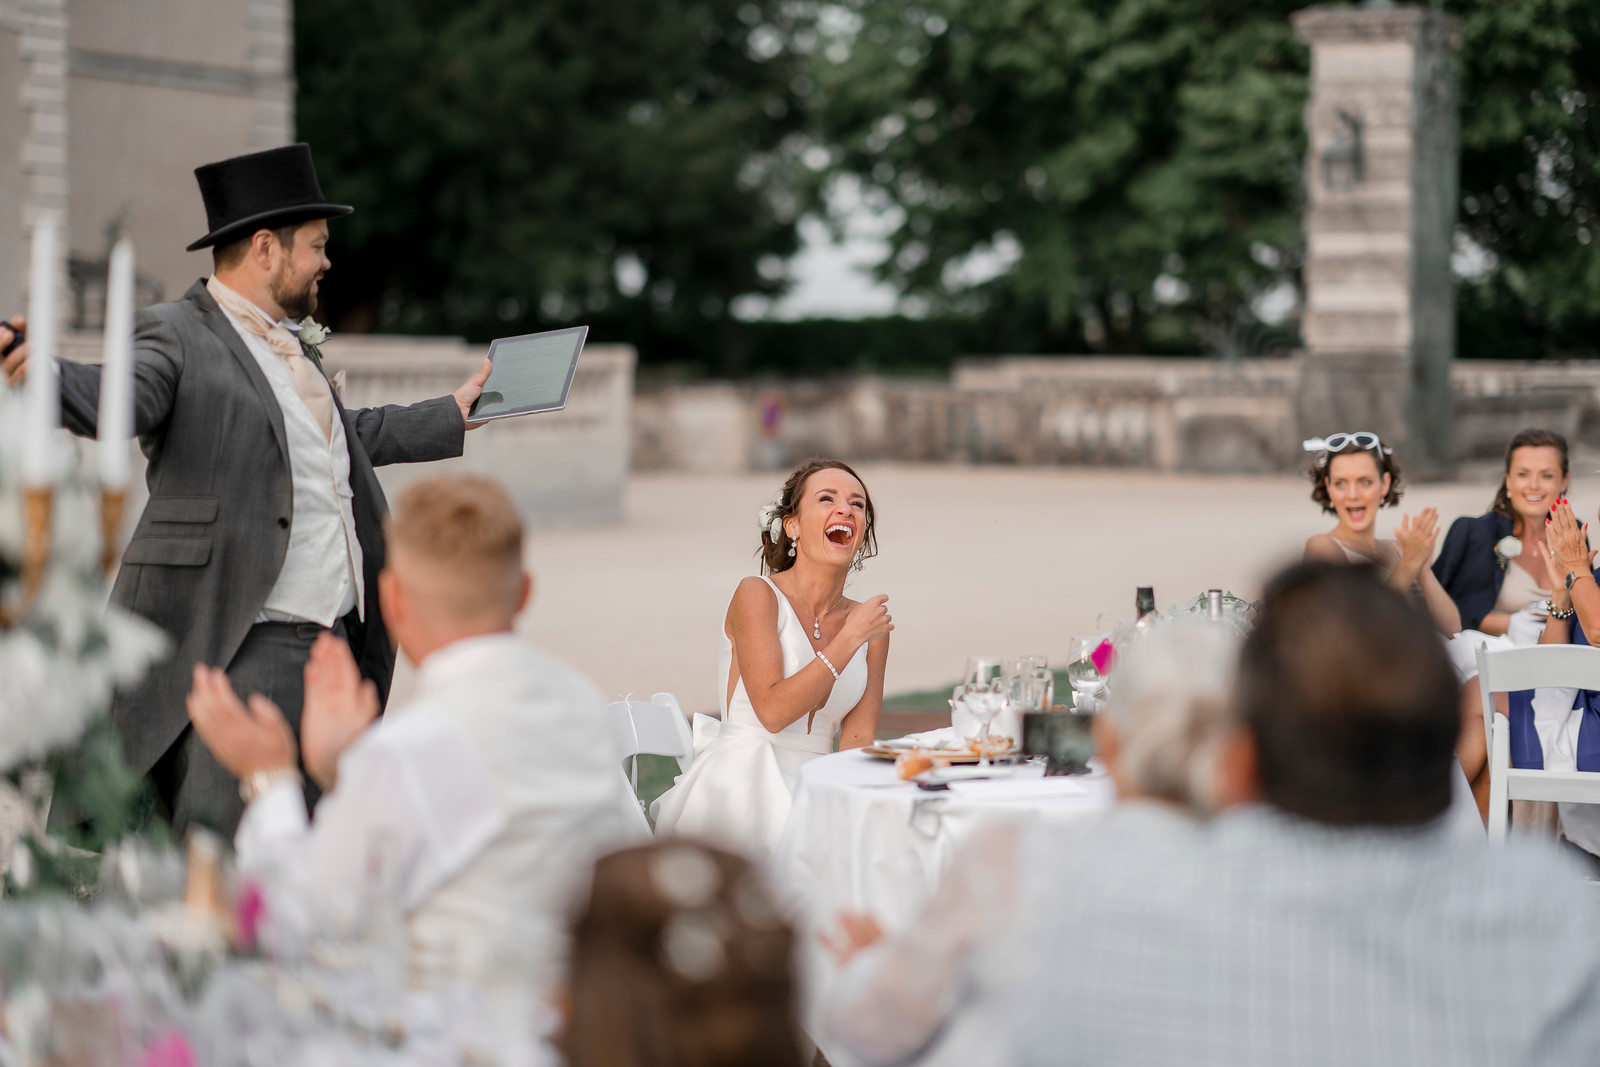 Bride is laughing a lot as the groom finishes his wedding speech